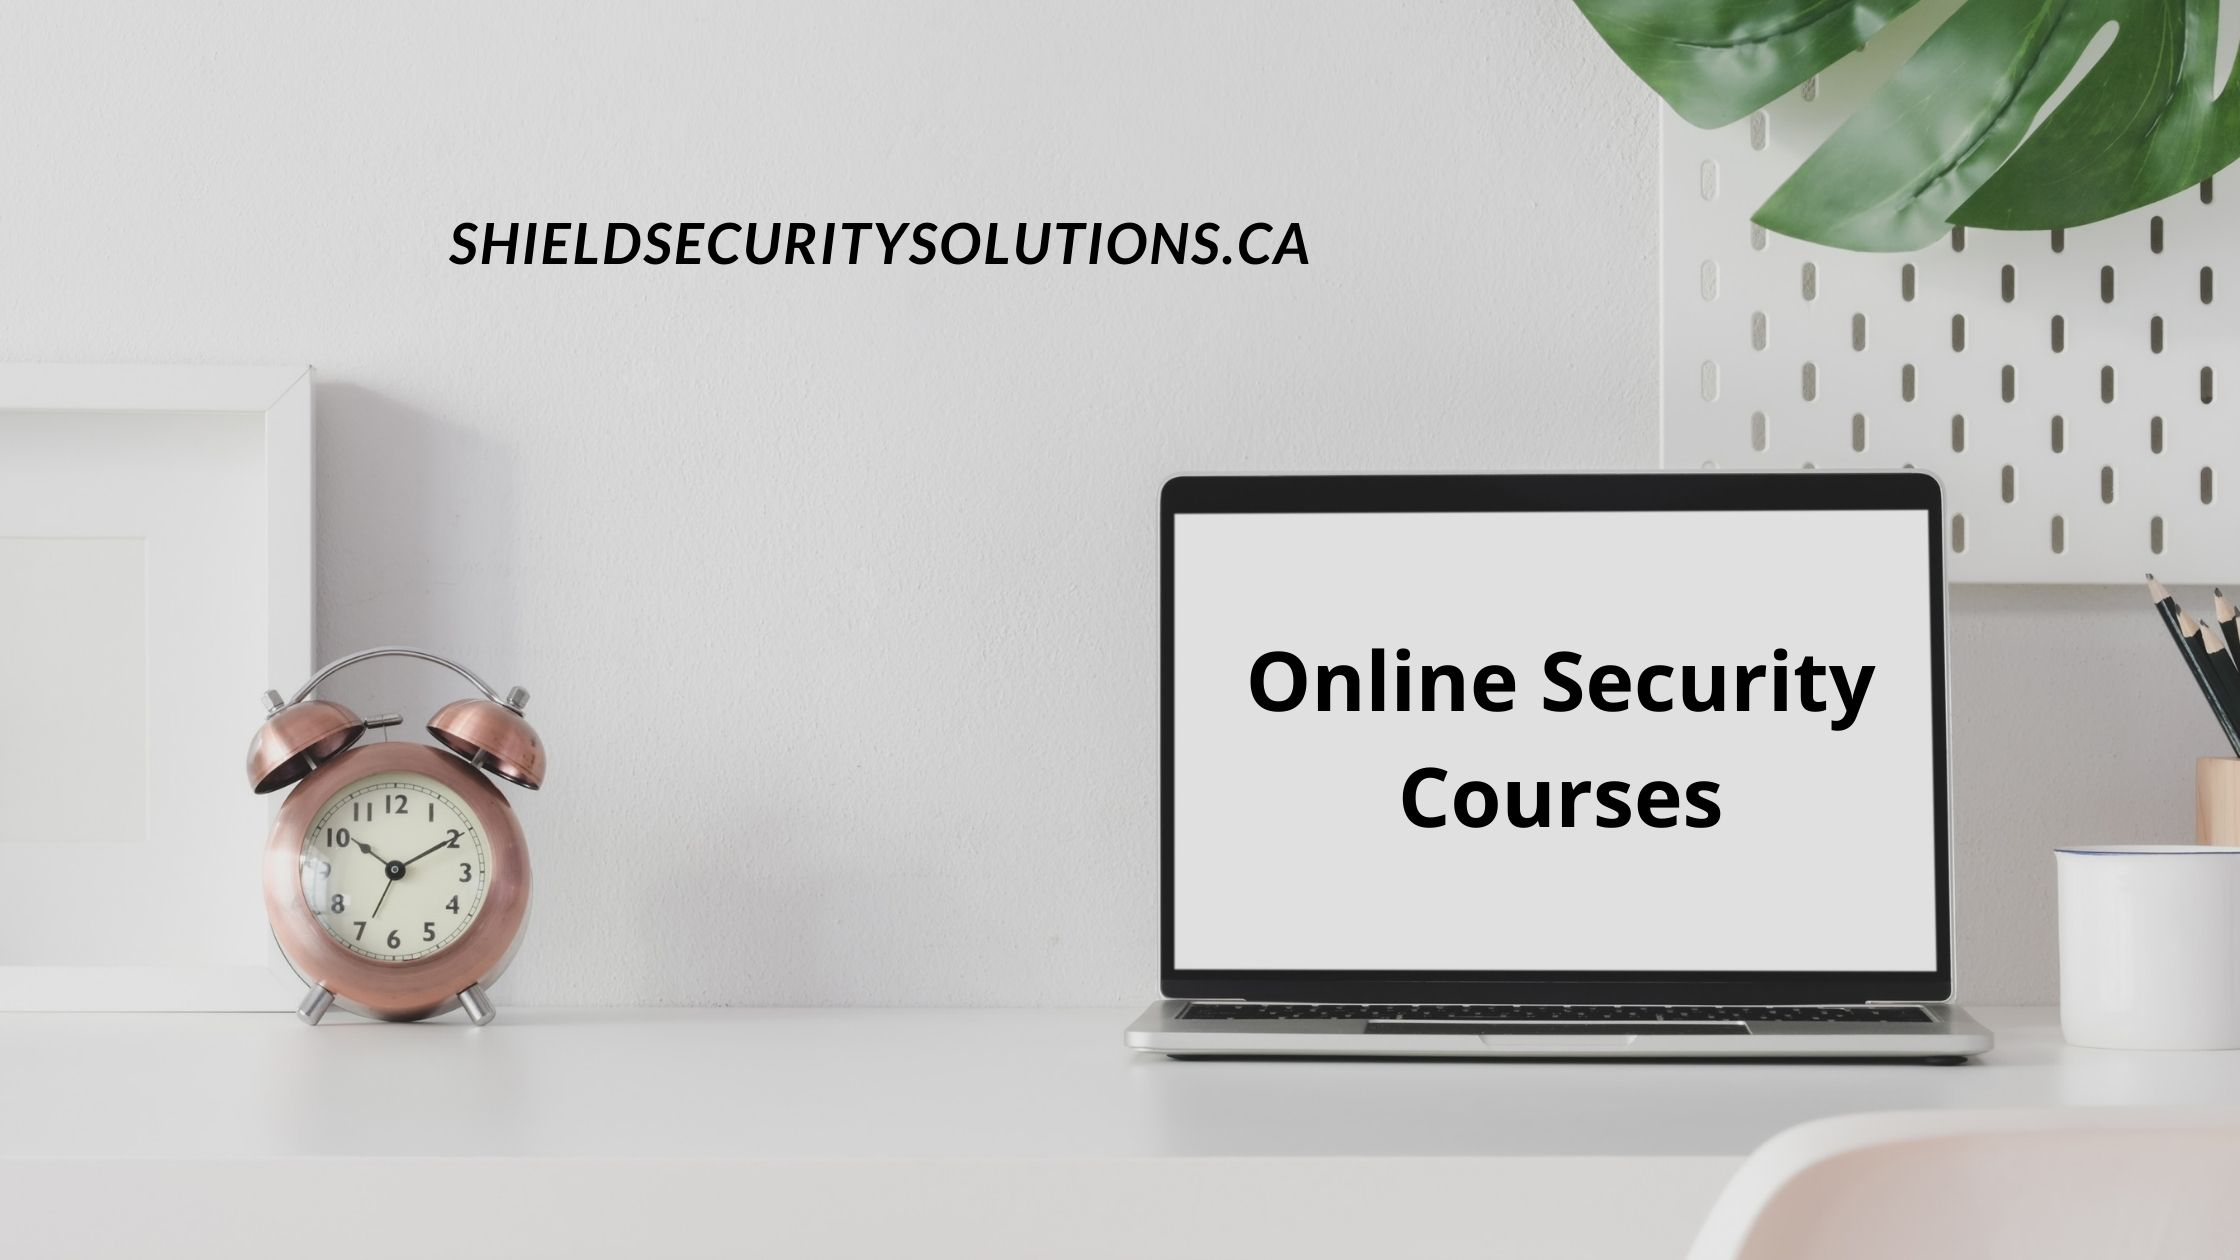 Online Security Courses – A Perfect Alternative For Those Who Want To Be Security Guards